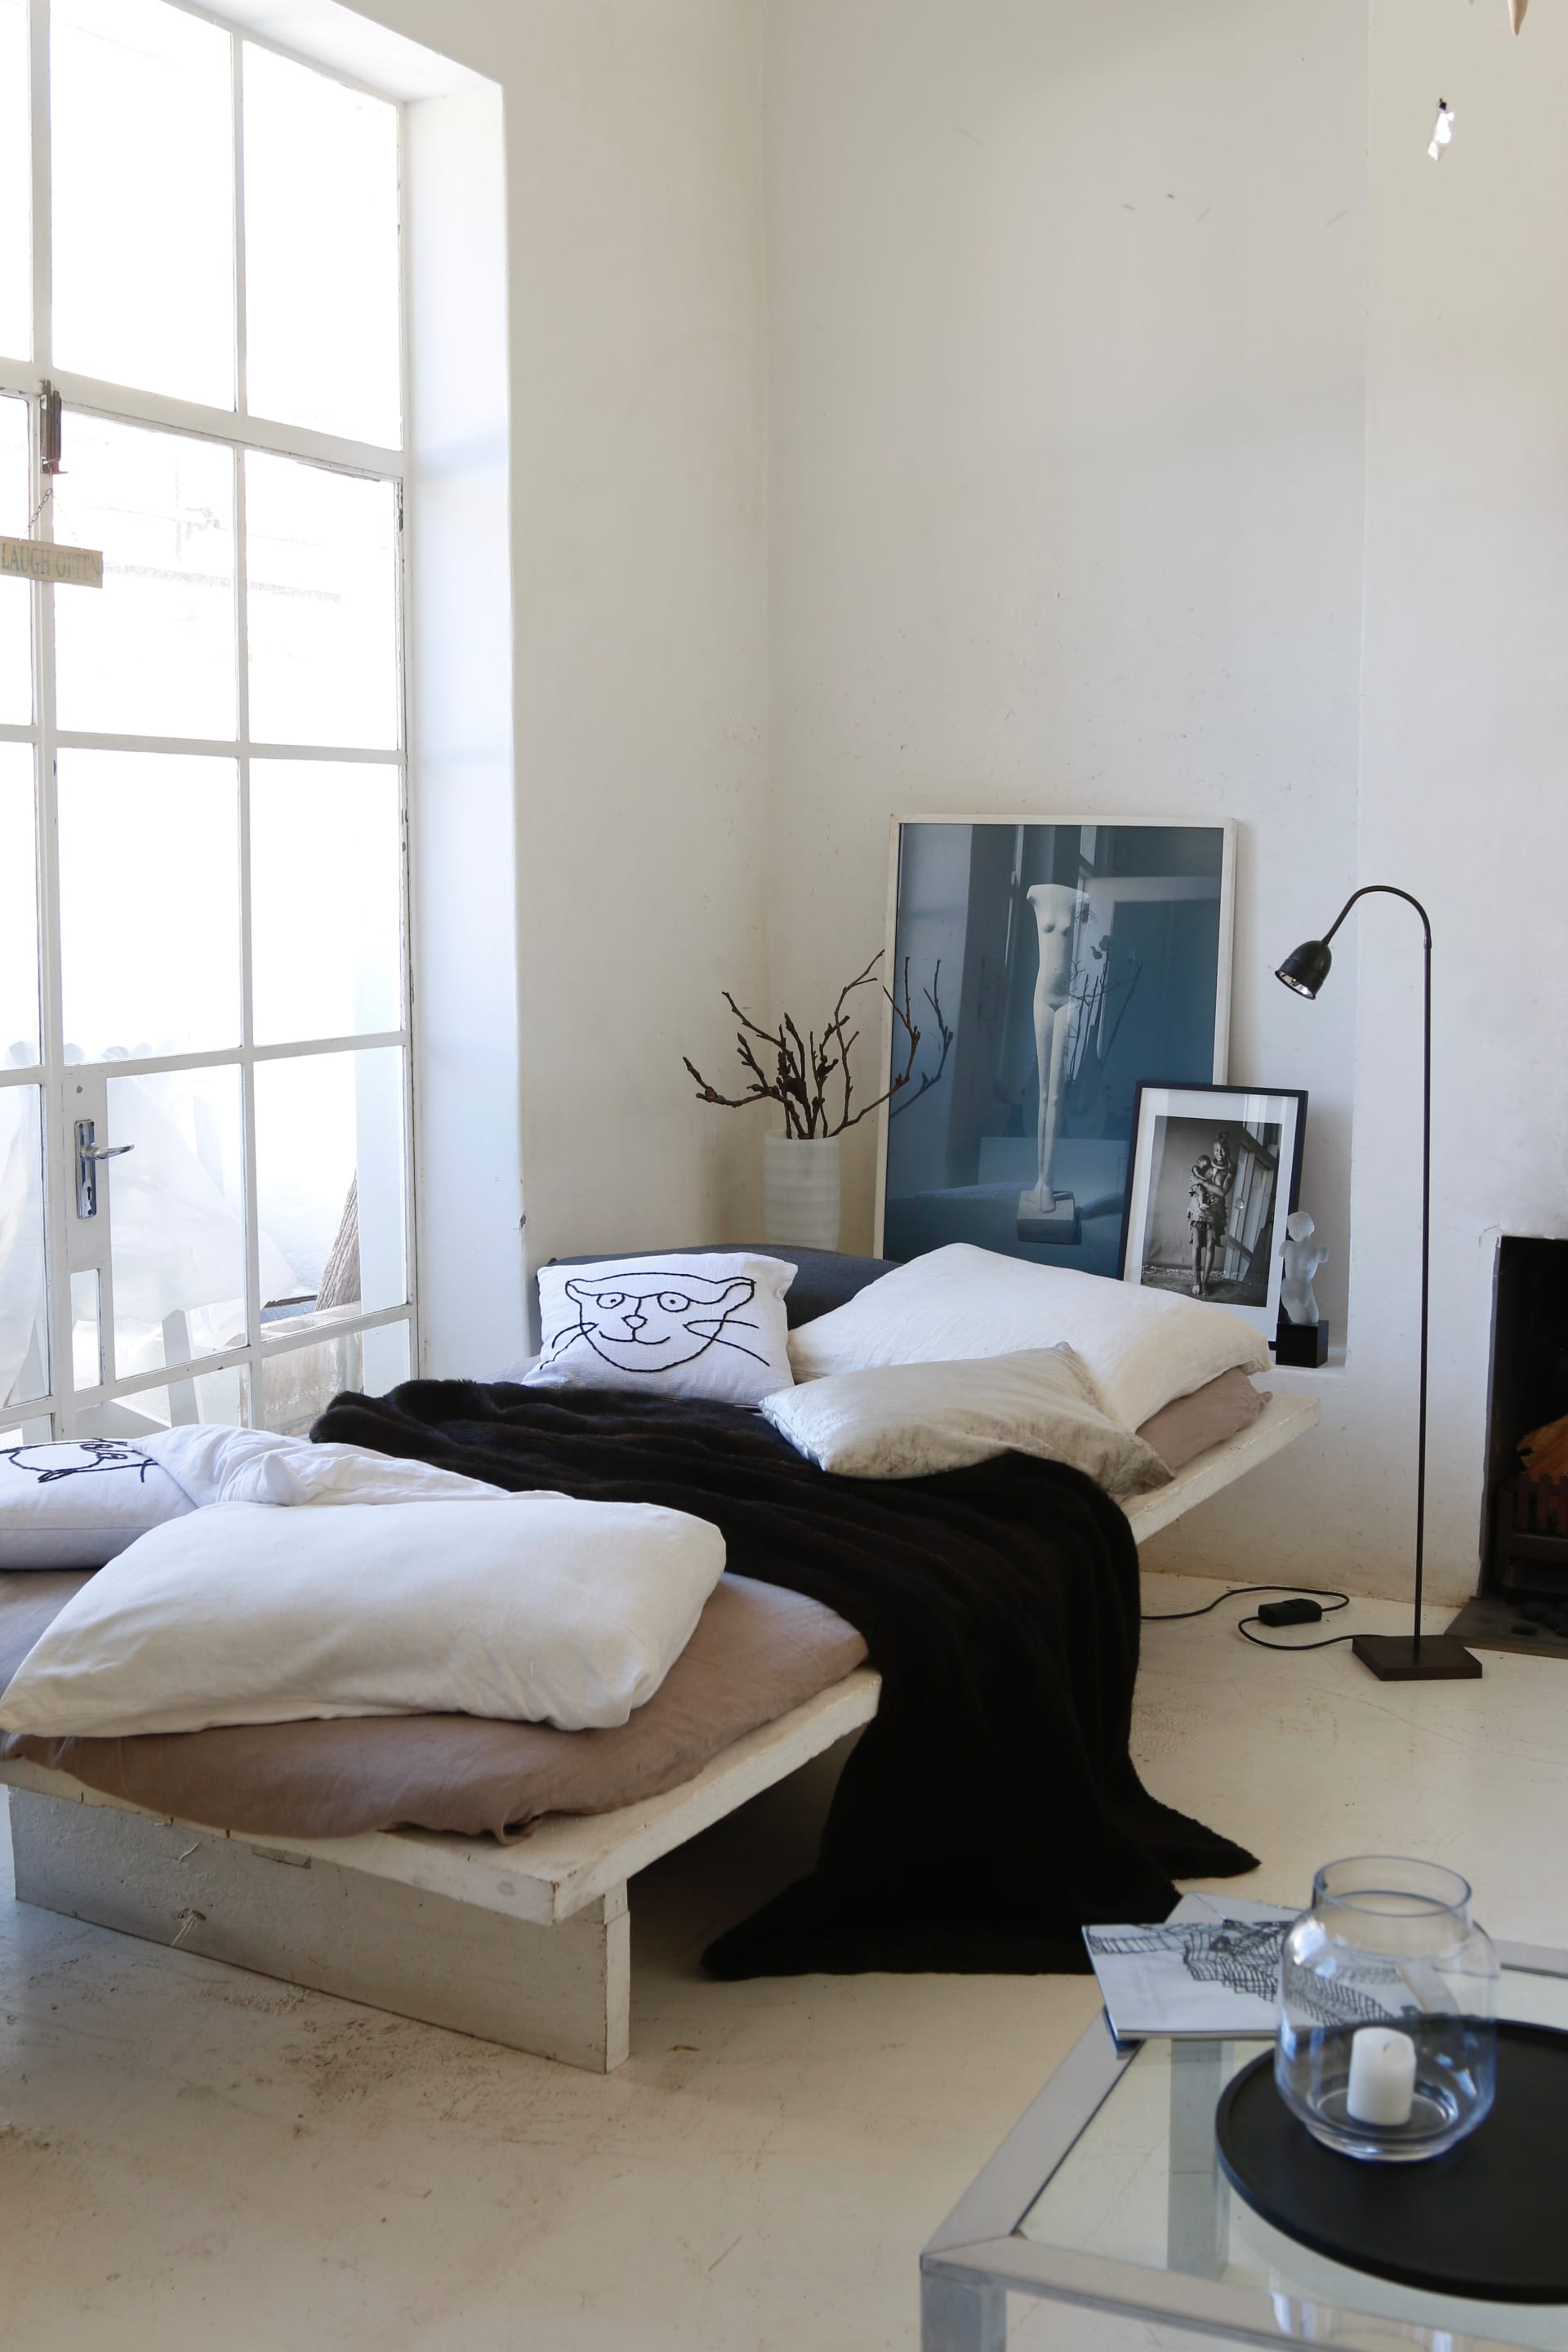 Thisall-white living space has been punctuated with a black lightning, black and white photo frames, atexturedthrow and black wooden tray.